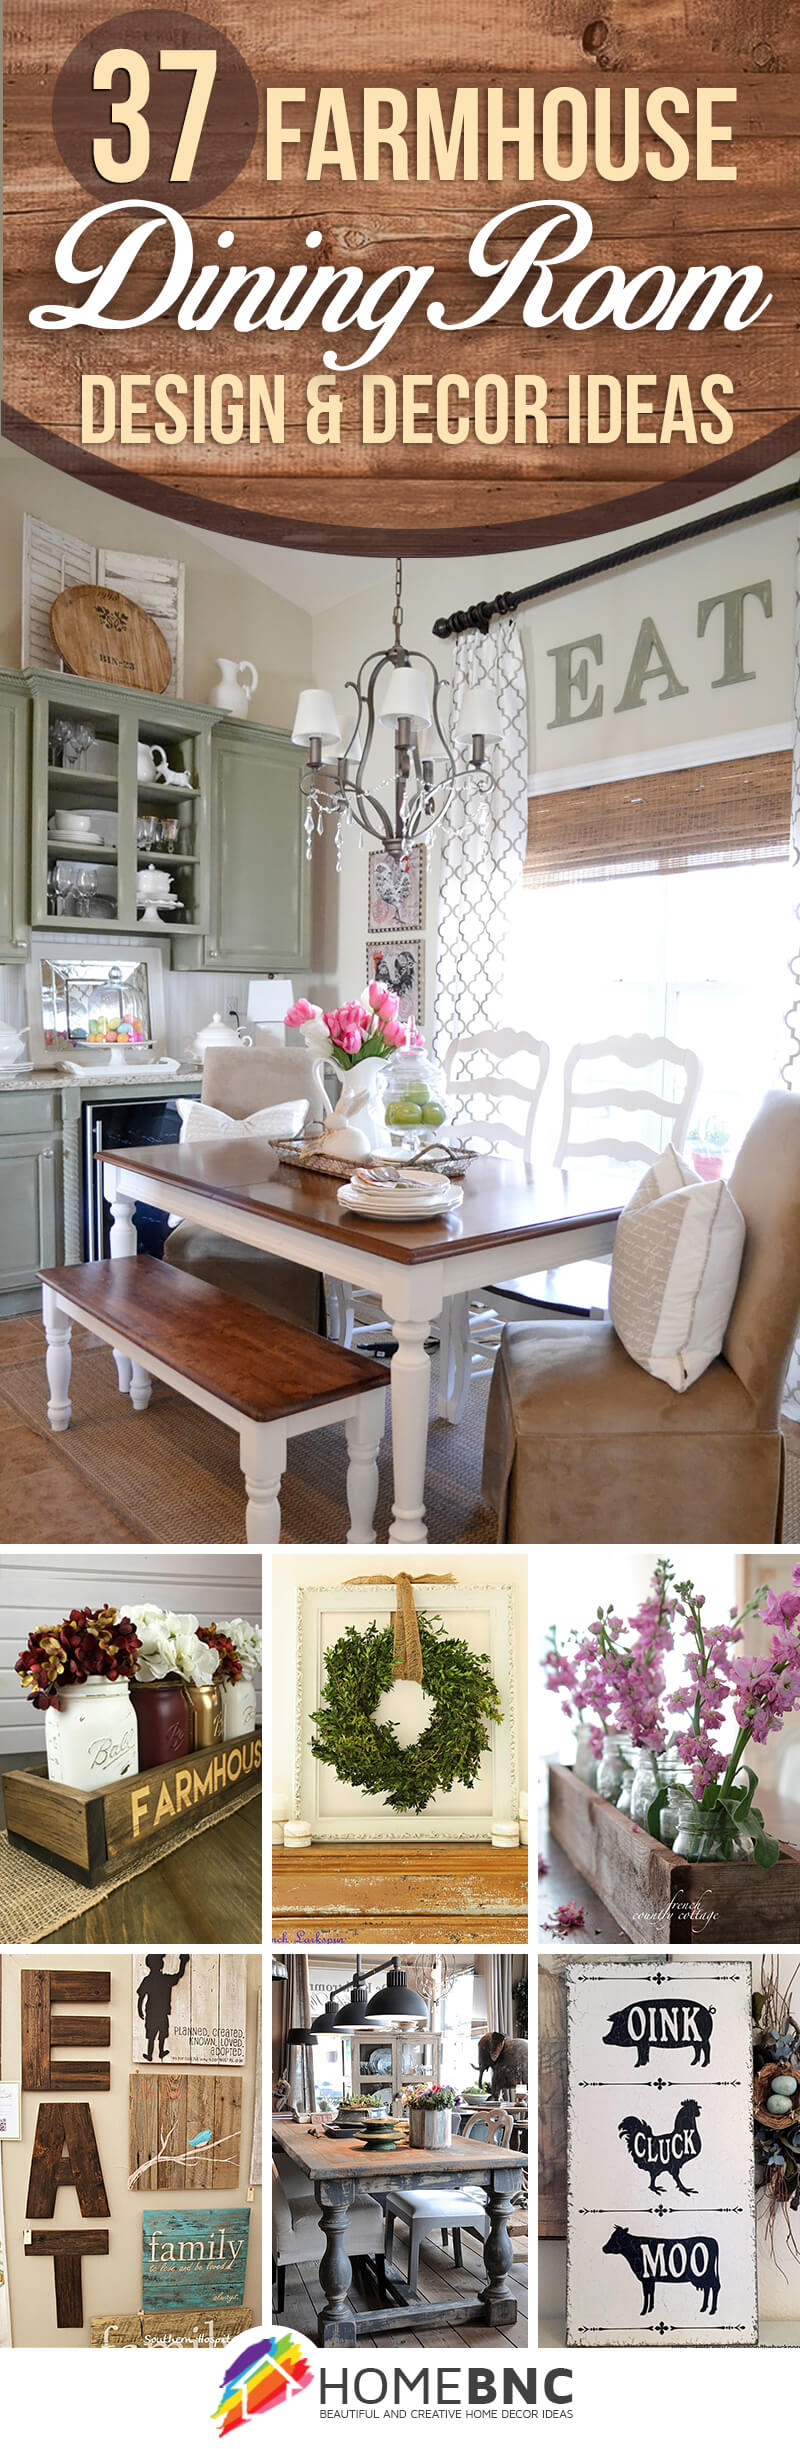 farmhouse dining room decorations - Home Design And Decor Ideas